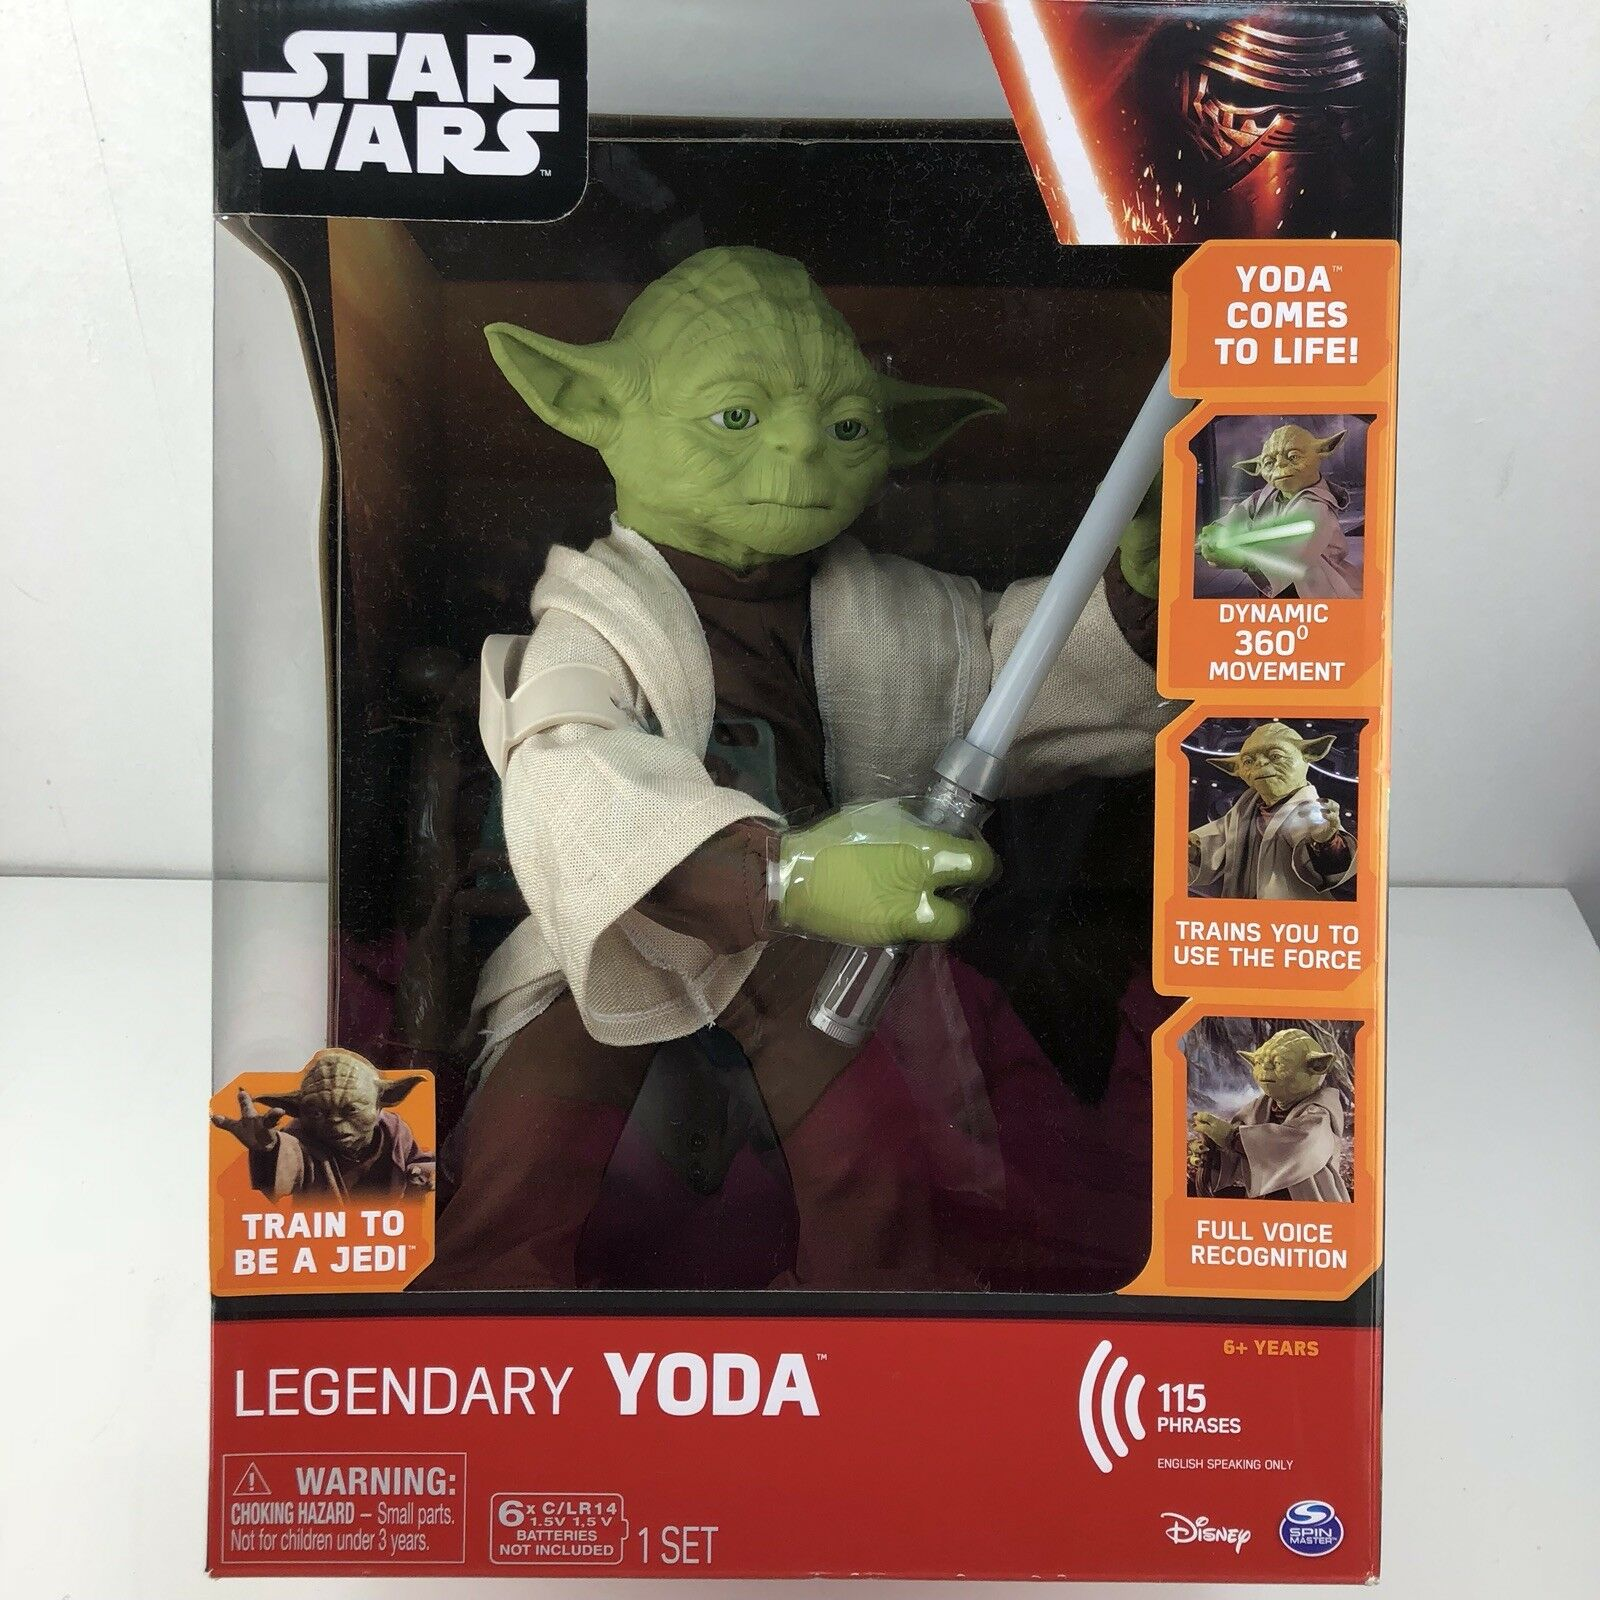 Star Wars Legendary Jedi Master Yoda Full Voice Recognition, 360-degree movement